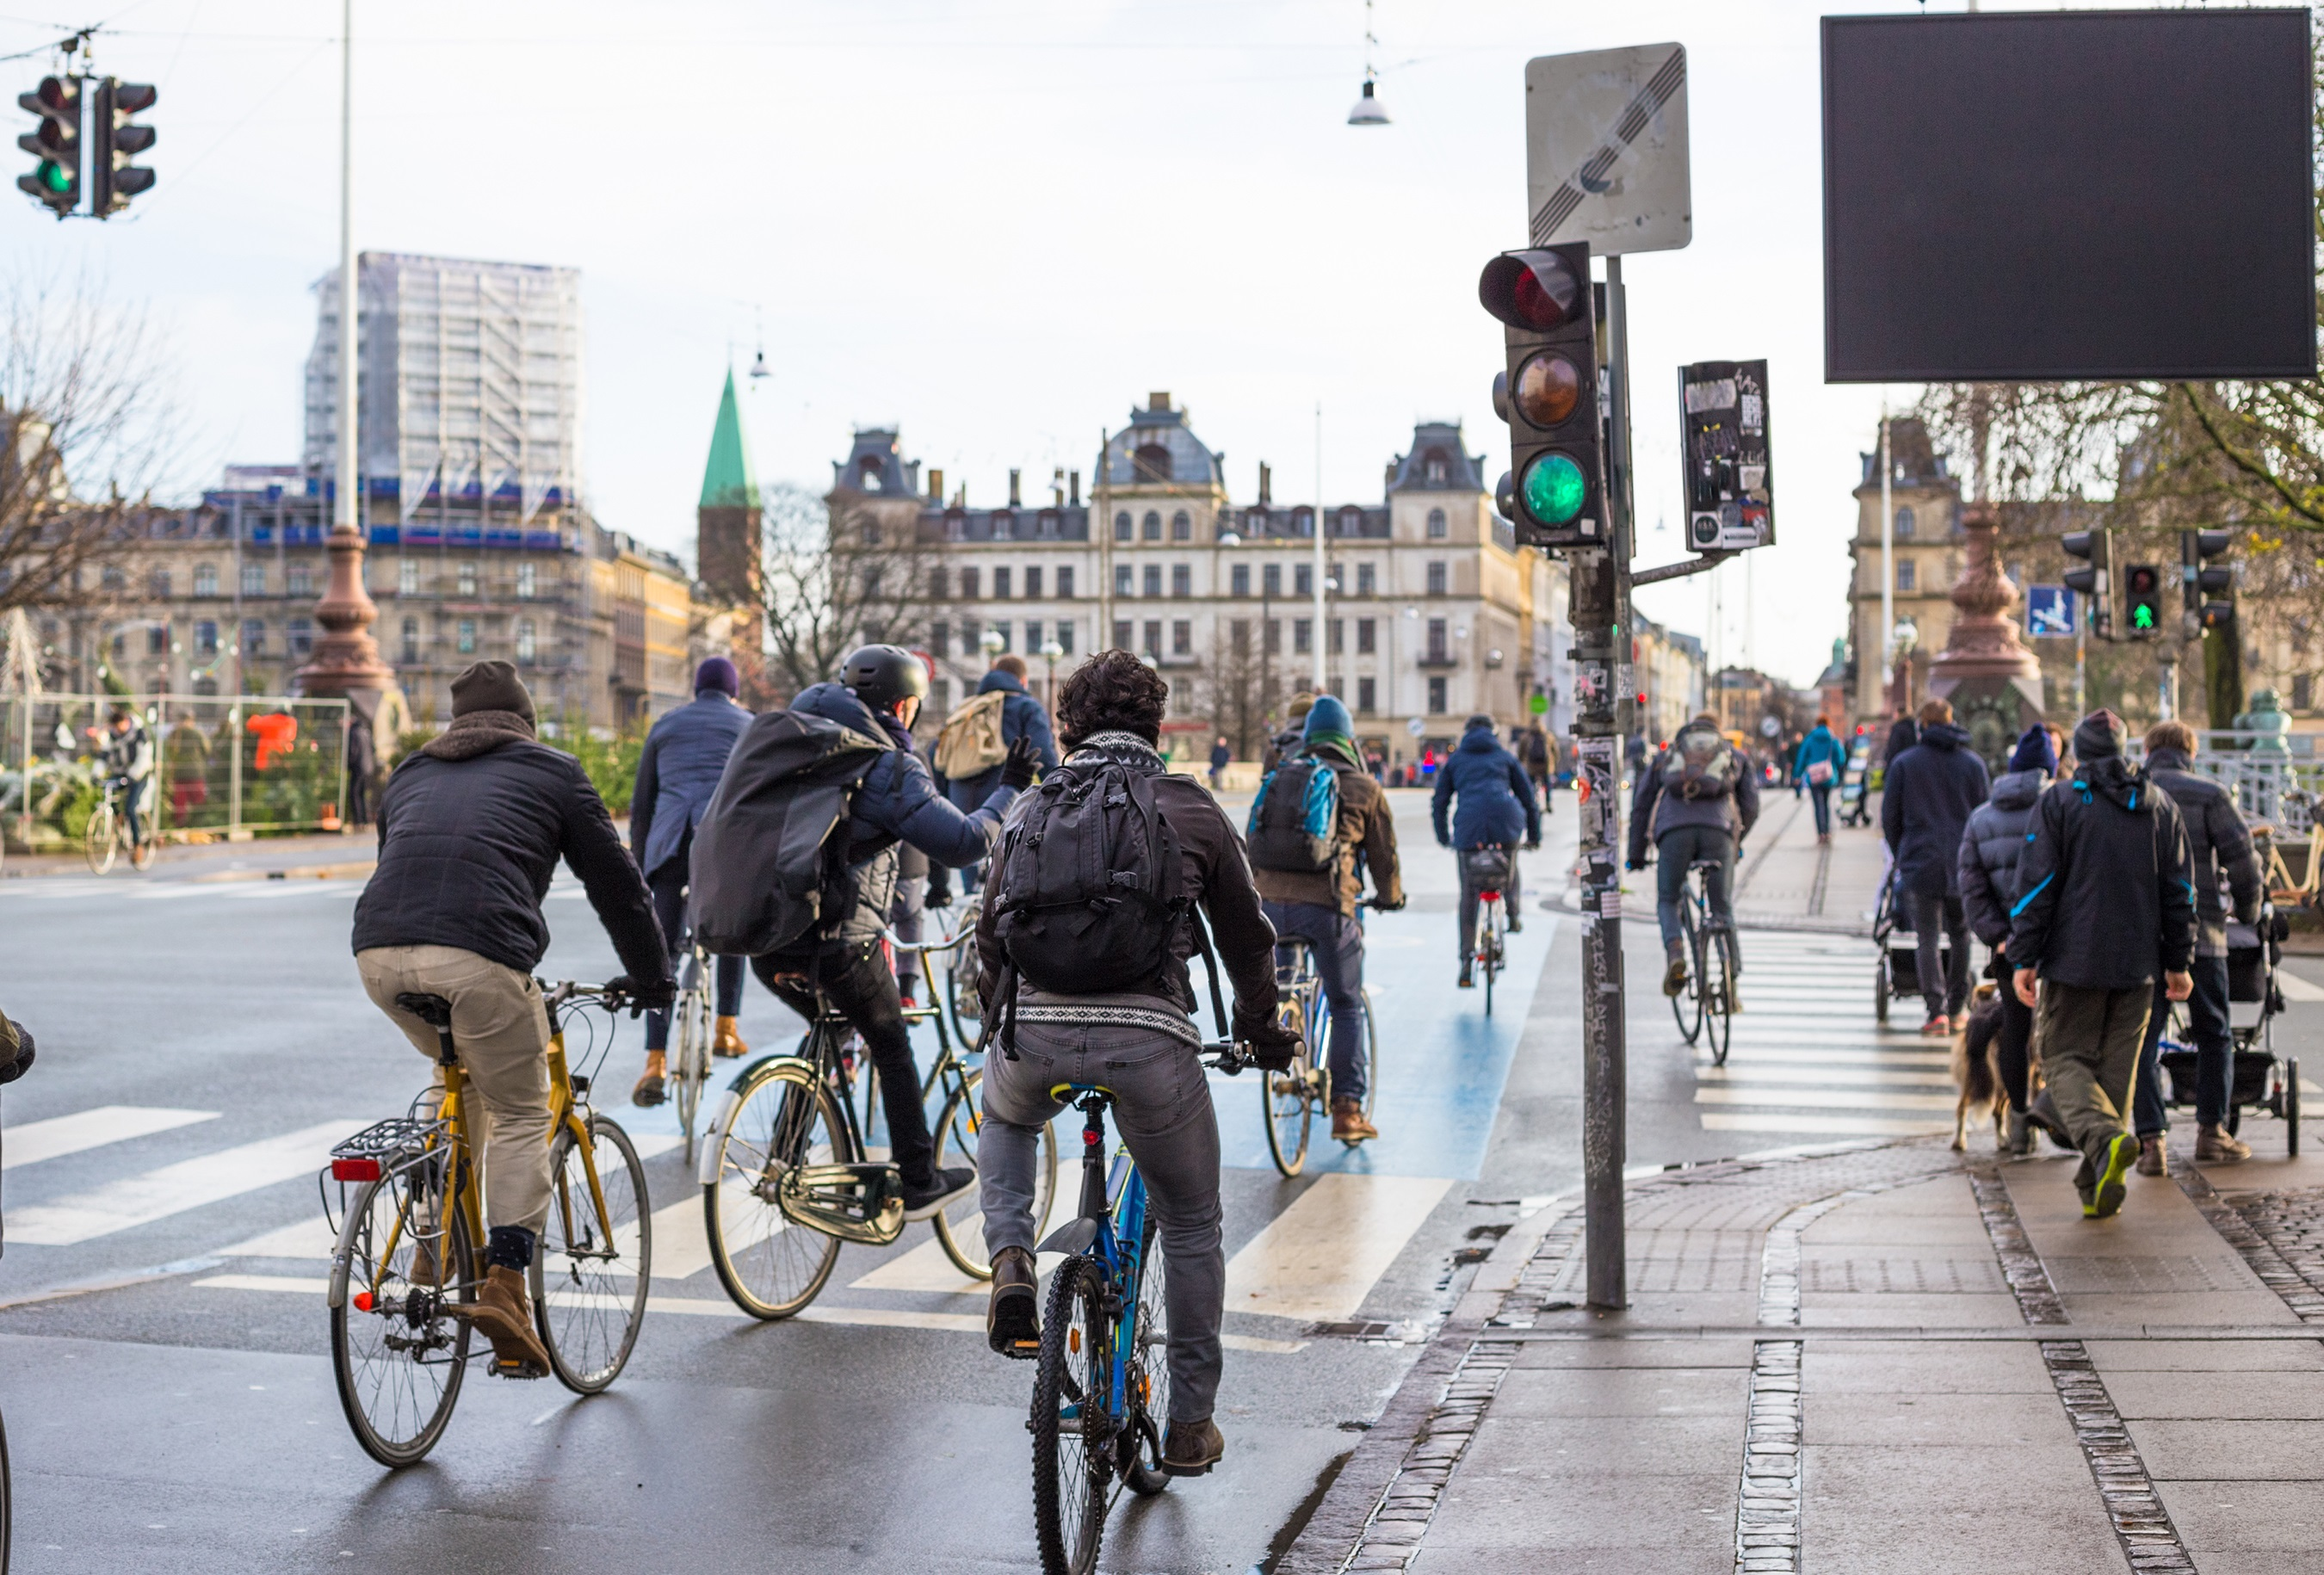 cyclists in city (Kopenhagen)